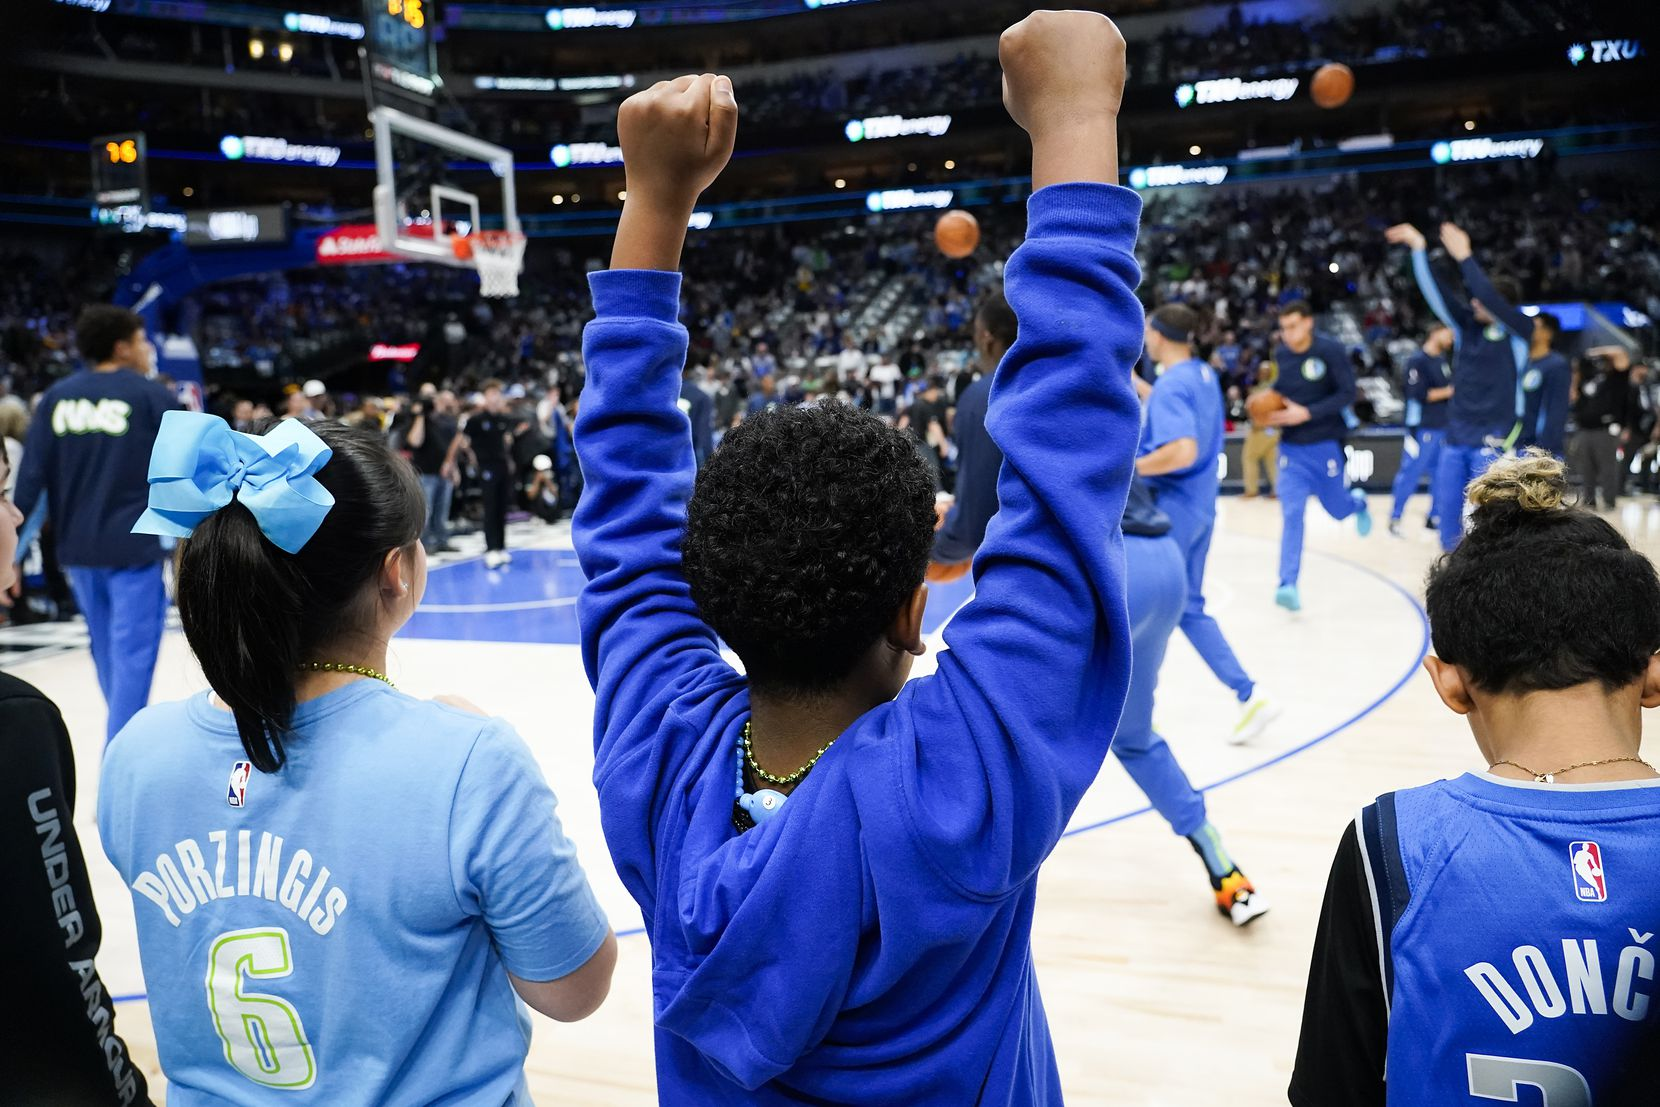 Young fans cheer as the Dallas Mavericks warm up before an NBA basketball game against the Los Angeles Lakers at American Airlines Center on Friday, Jan. 10, 2020, in Dallas.